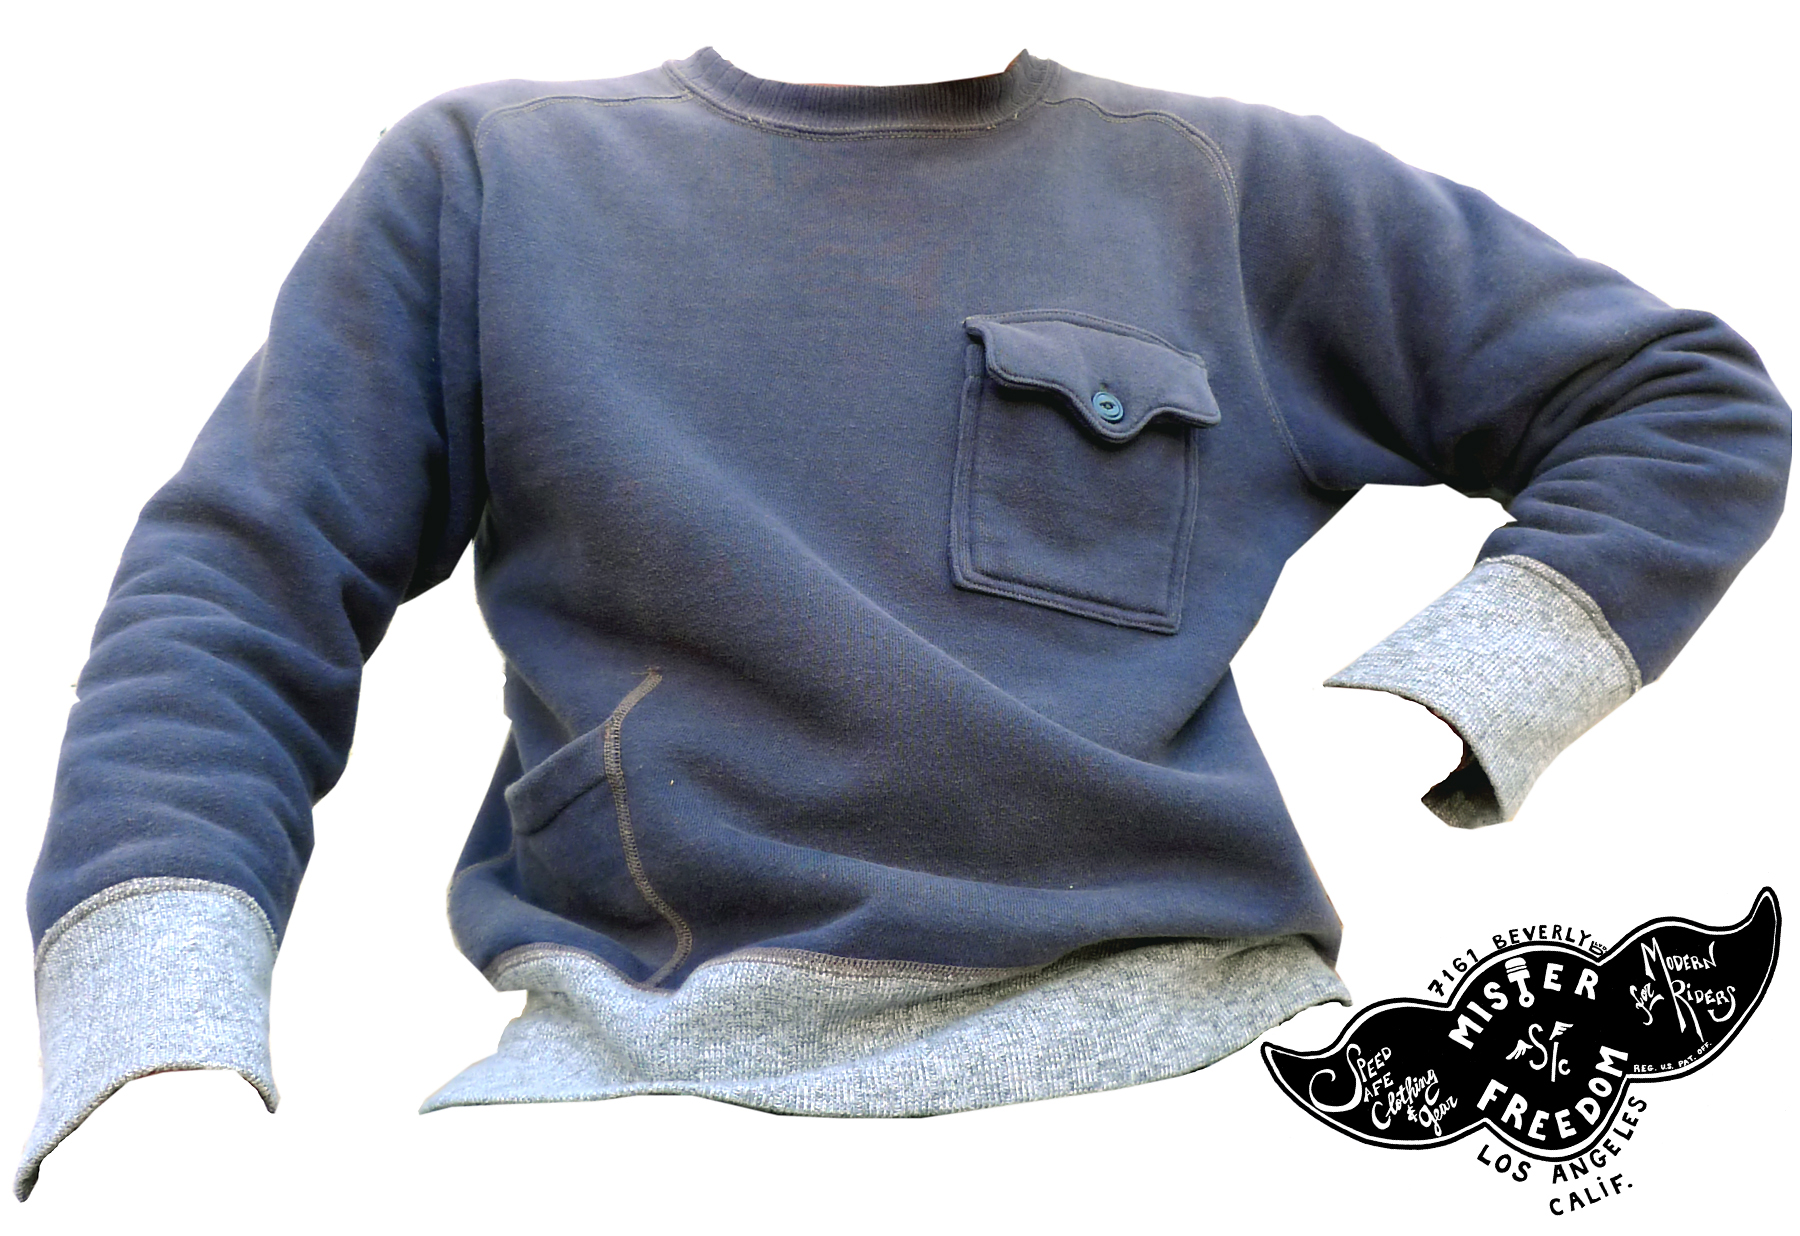 MFSC Mechanic Sweat